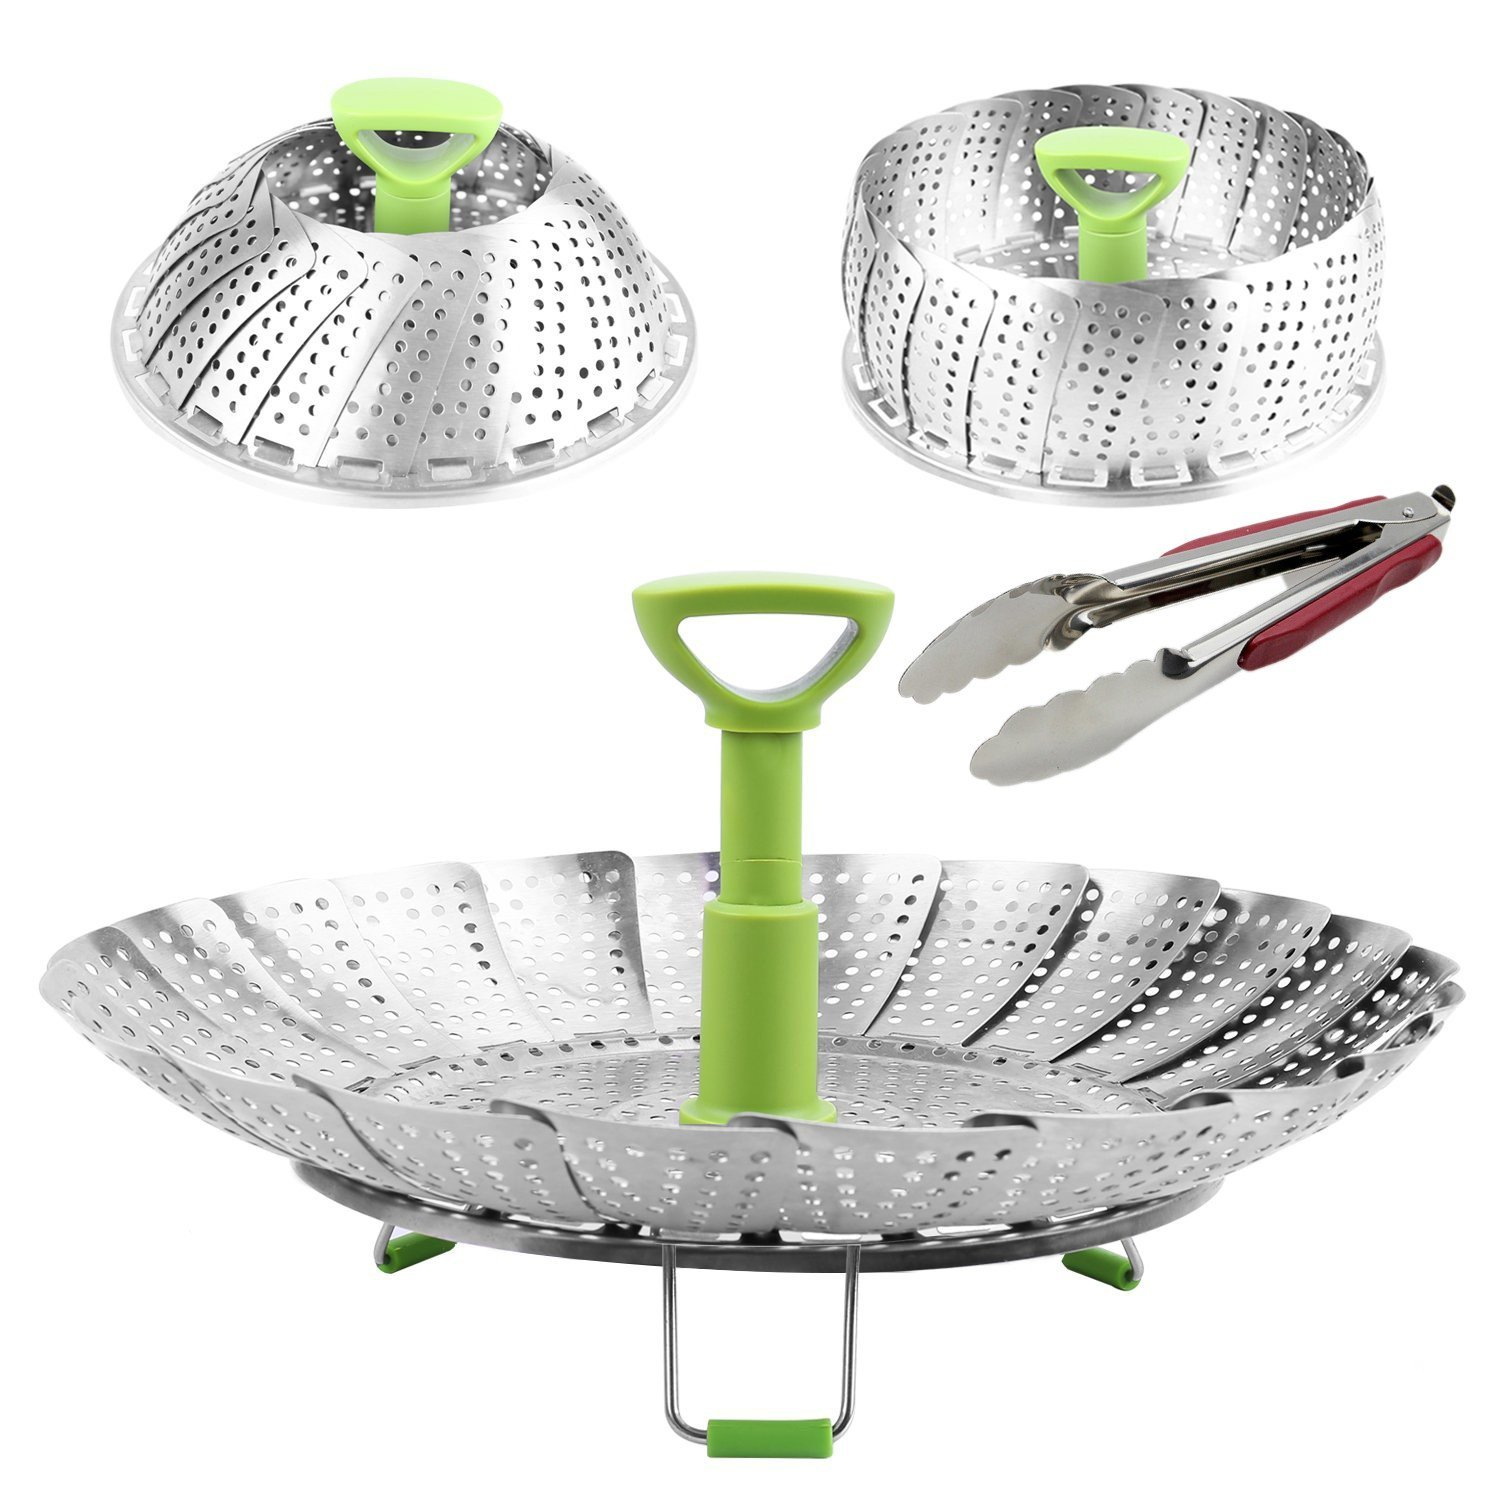 Collapsible Food And Vegetable Steamer Basket Tray (7